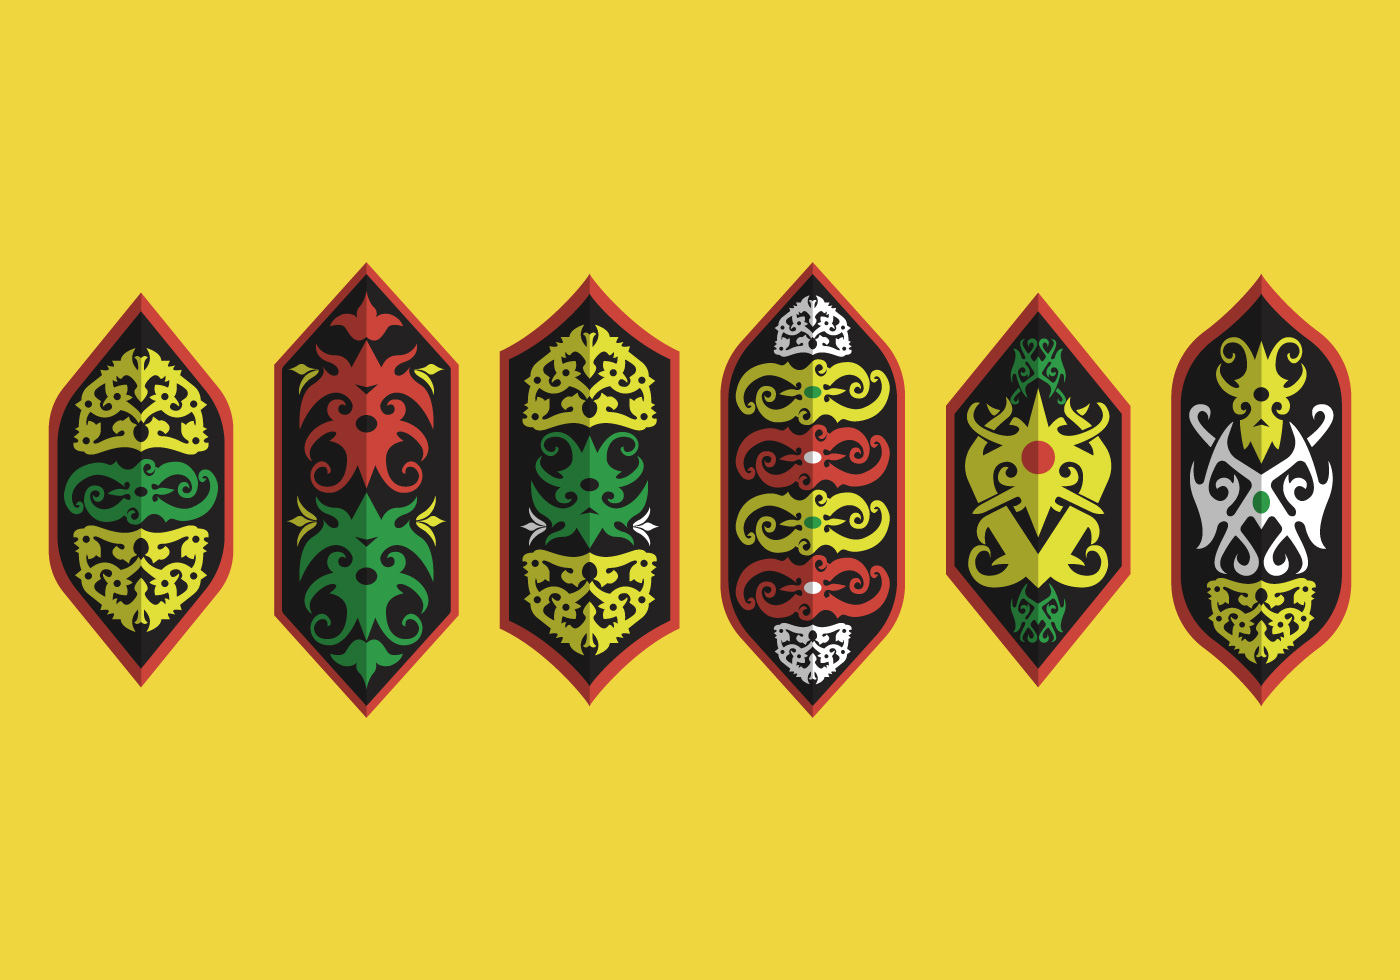 dayak shield tribal motif vector collection download free vector art stock graphics images. Black Bedroom Furniture Sets. Home Design Ideas